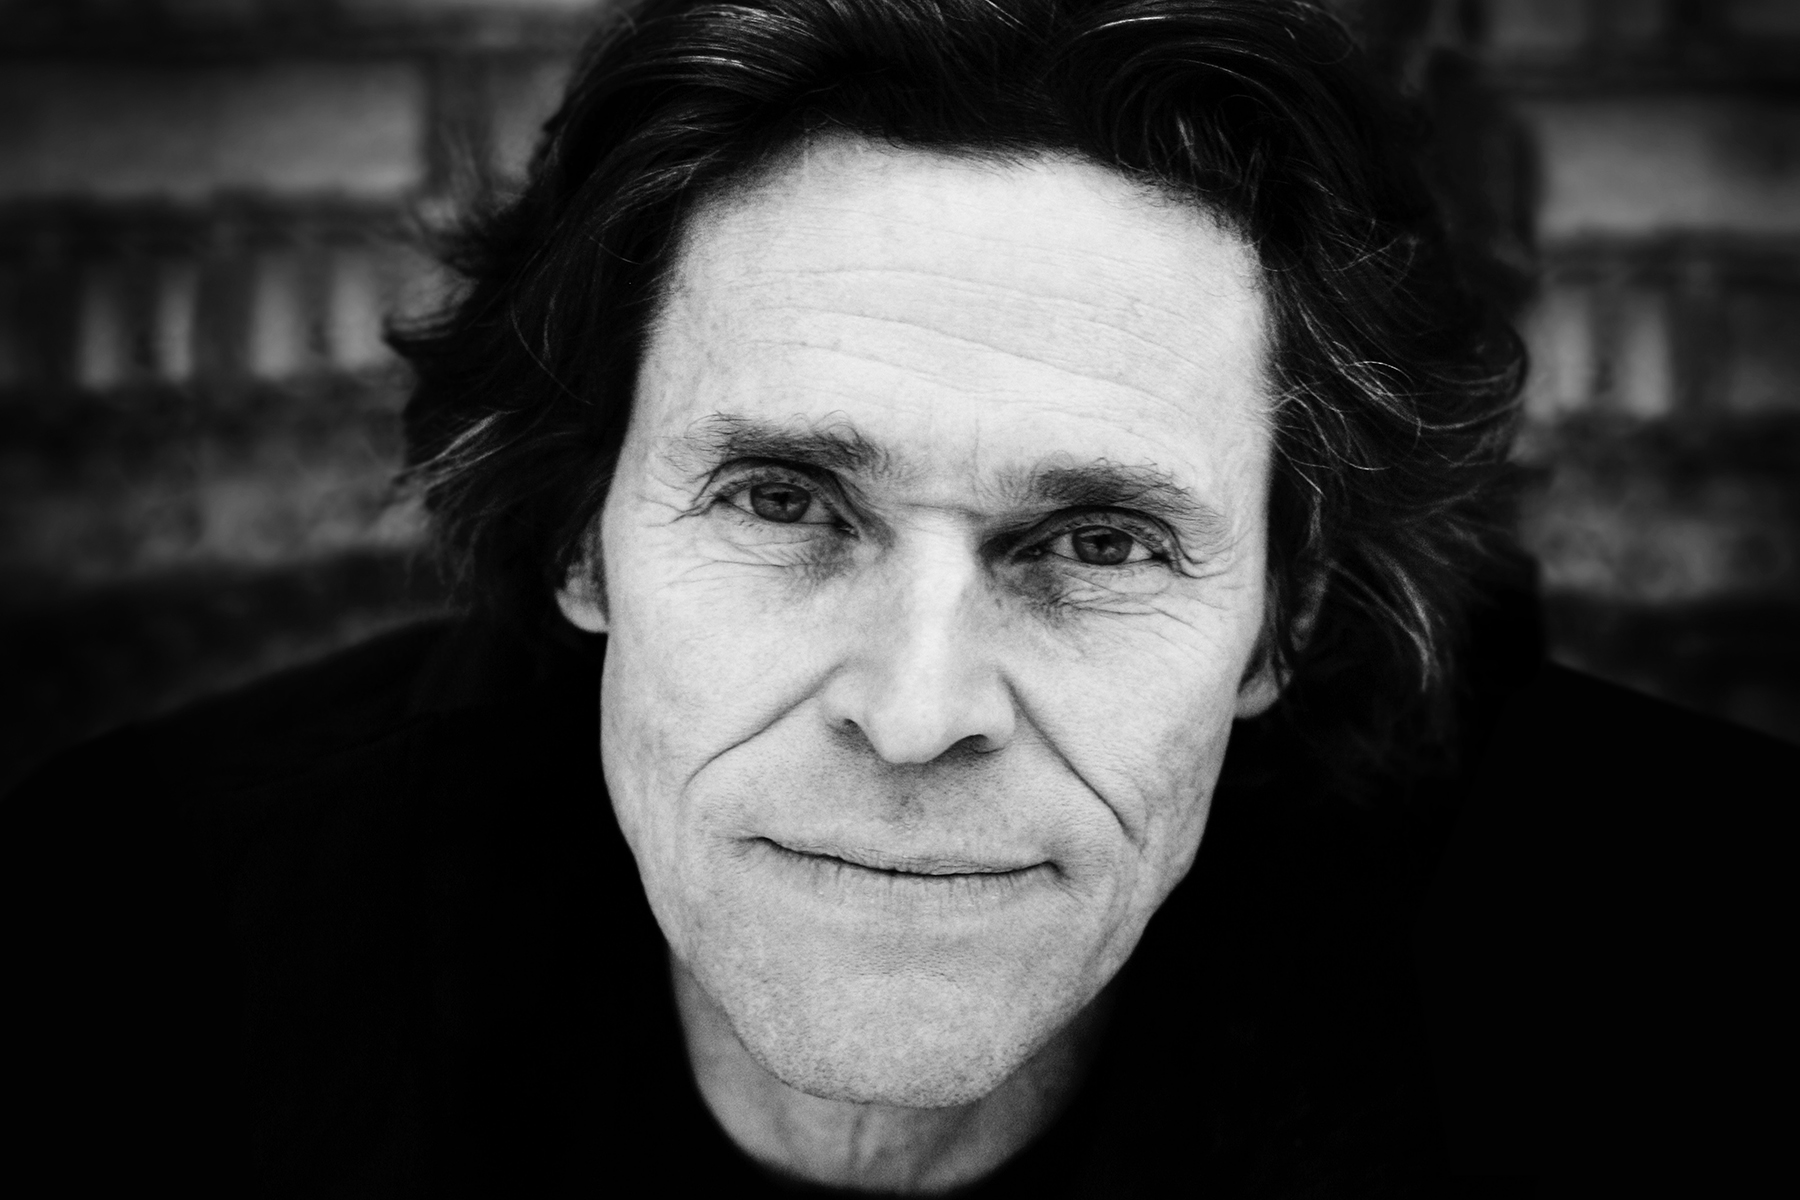 Amercian actor Willem Dafoe